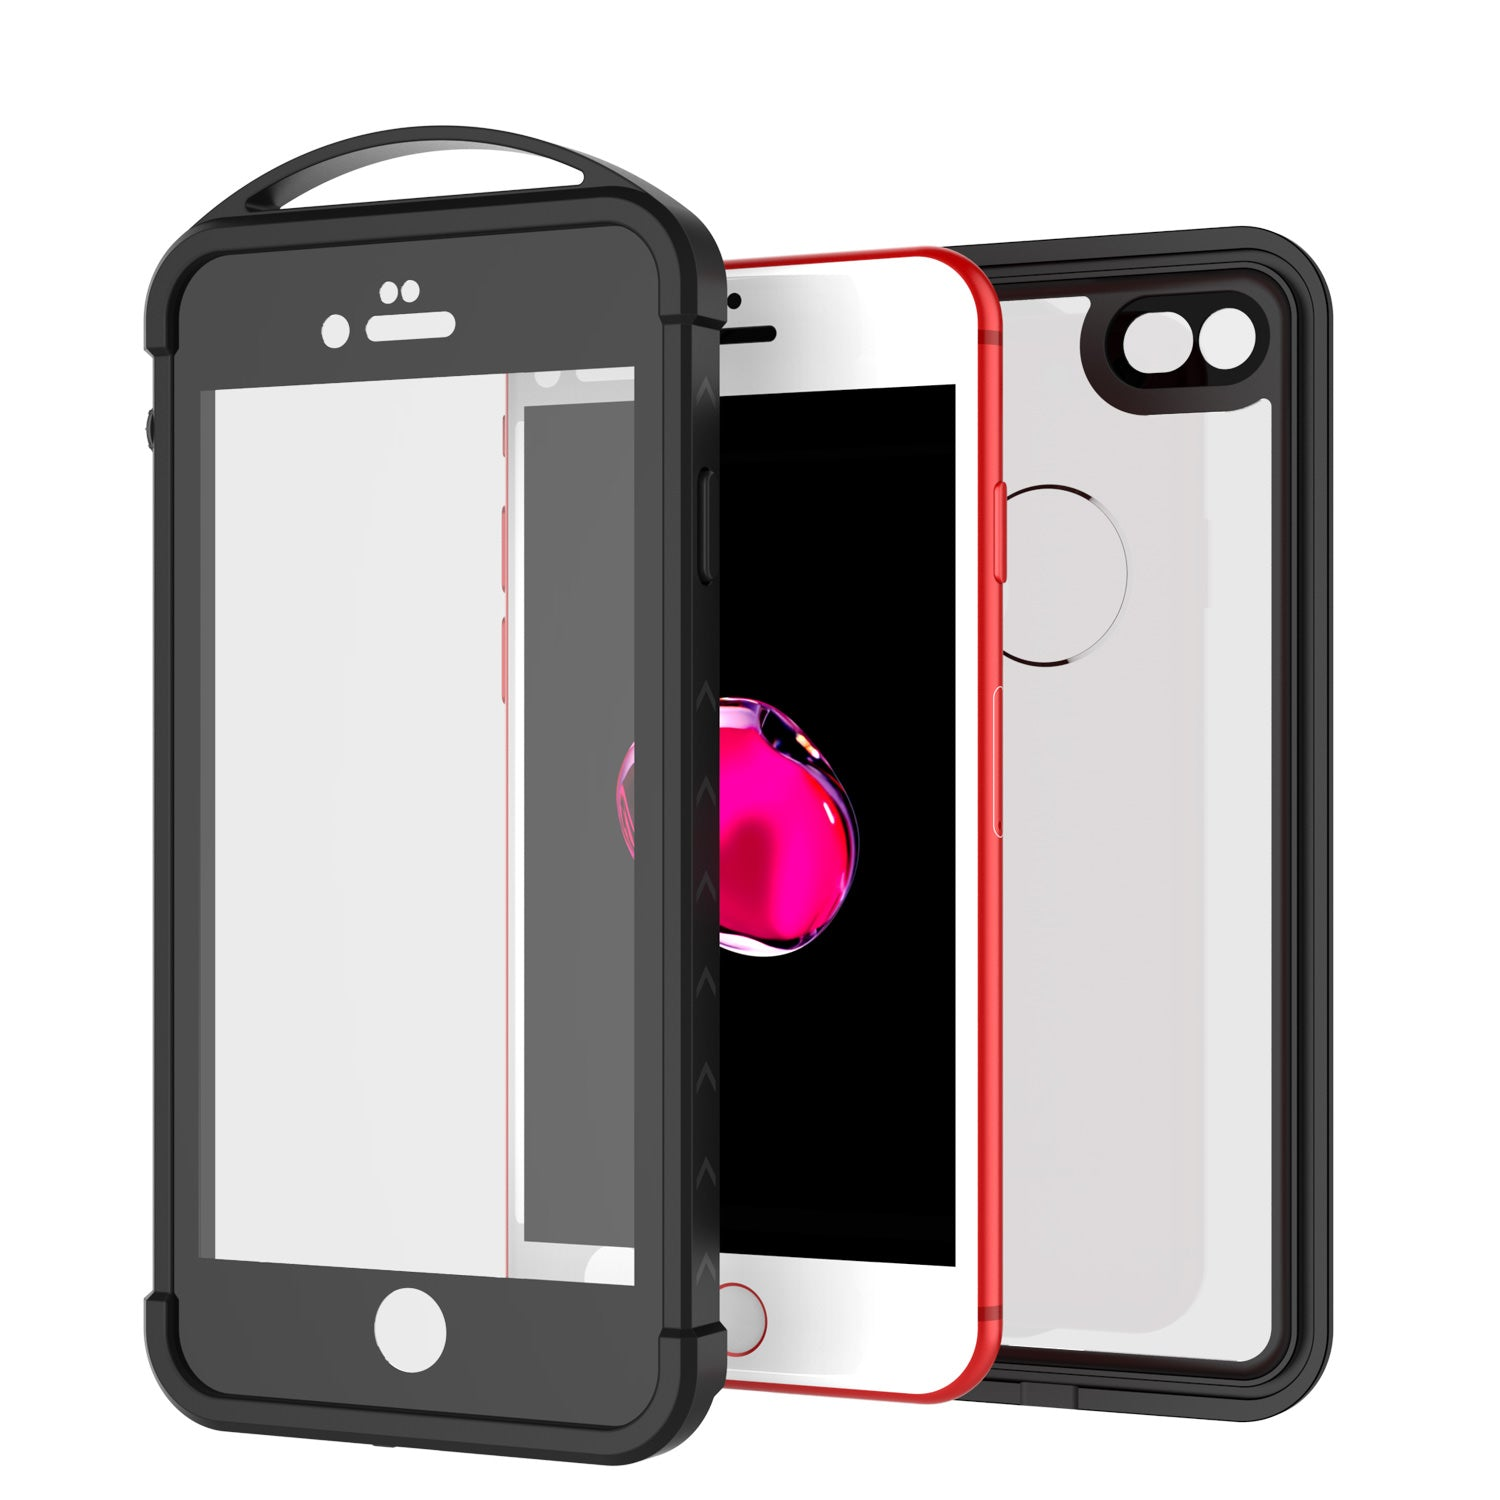 iPhone 7 Waterproof Case, Punkcase ALPINE Series, CLEAR | Heavy Duty Armor Cover